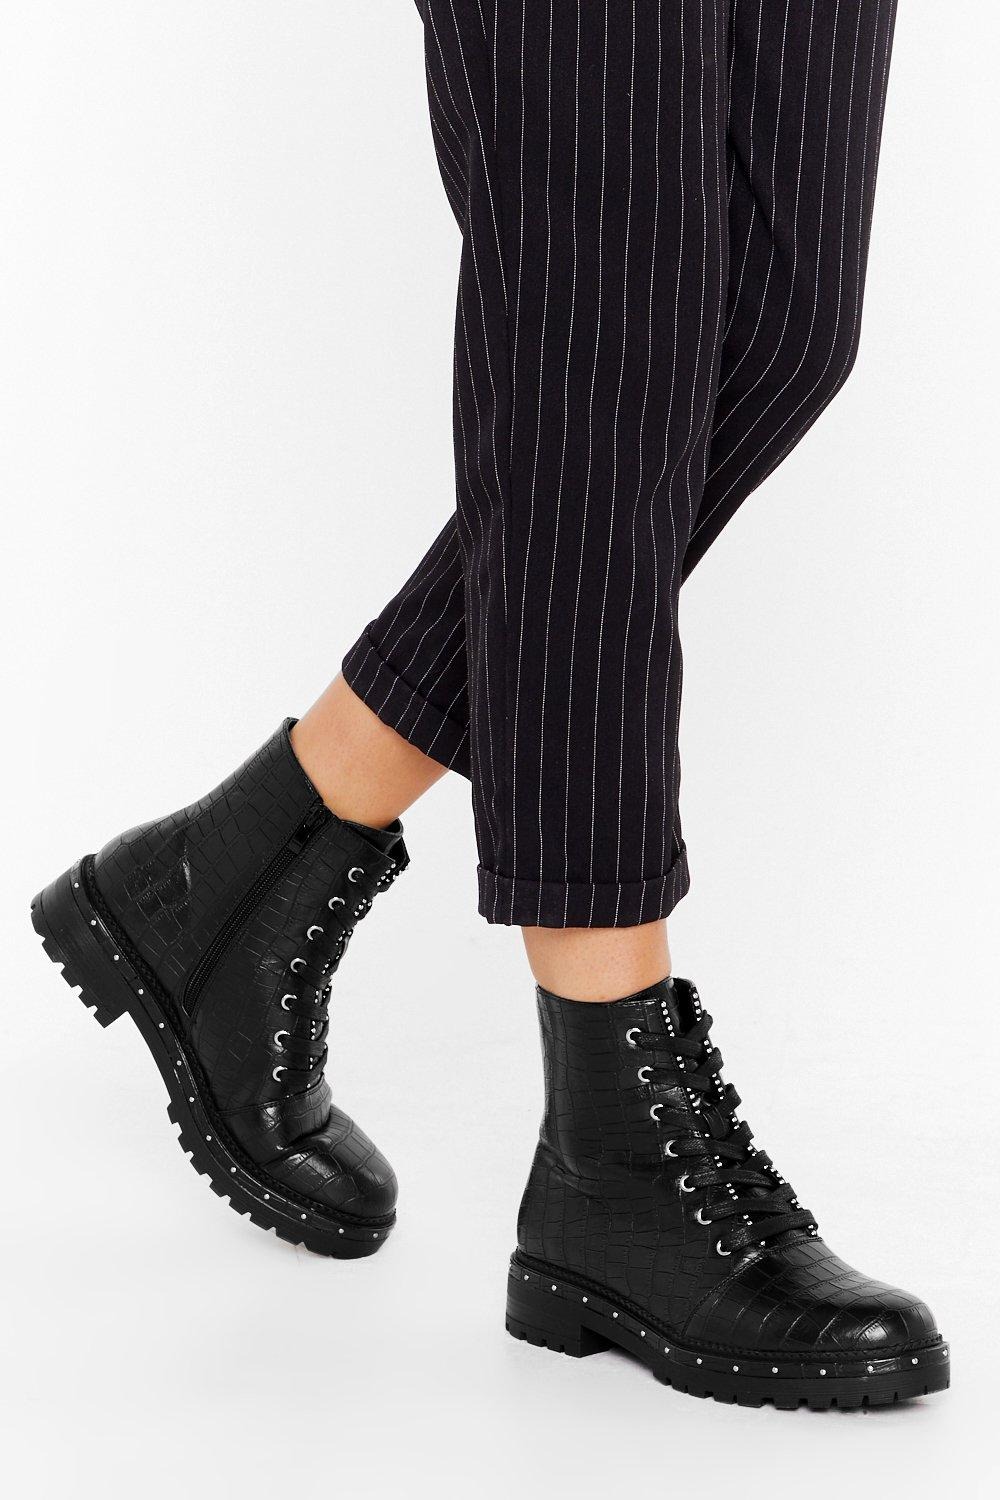 Image of Stud Times Ahead Faux Leather Croc Boots